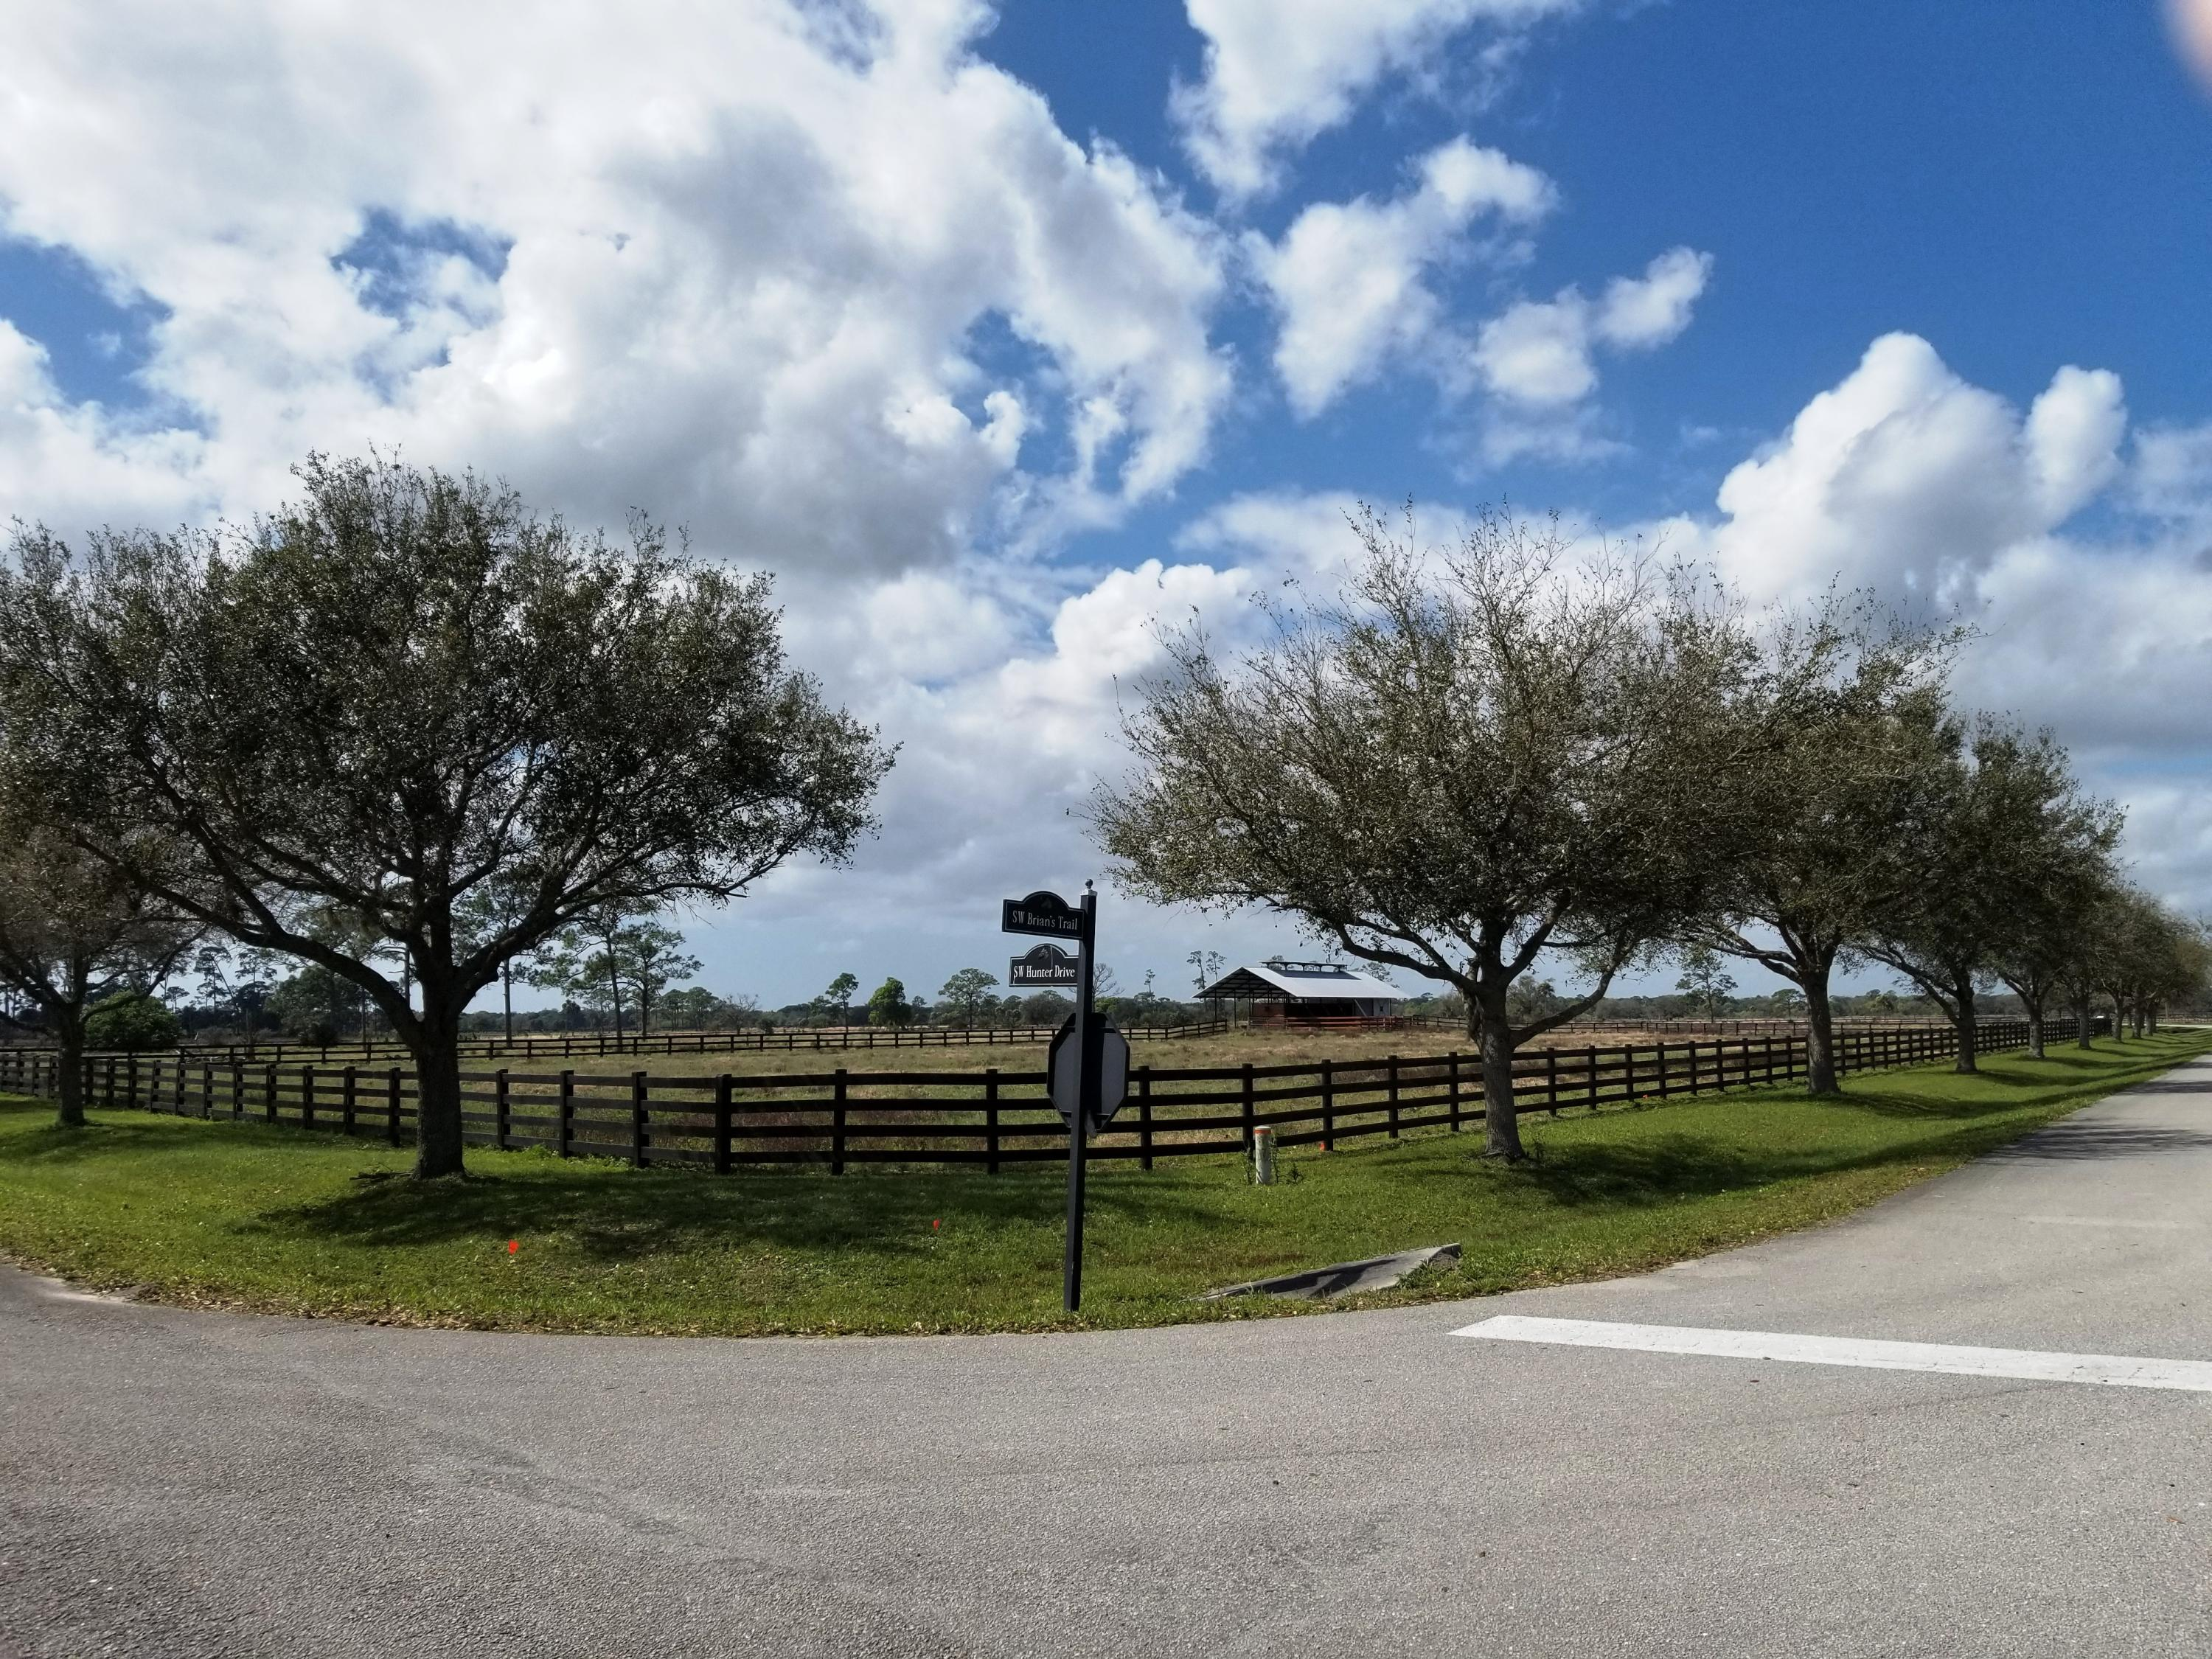 LOT 23 -  20 acres with pastures, airbar